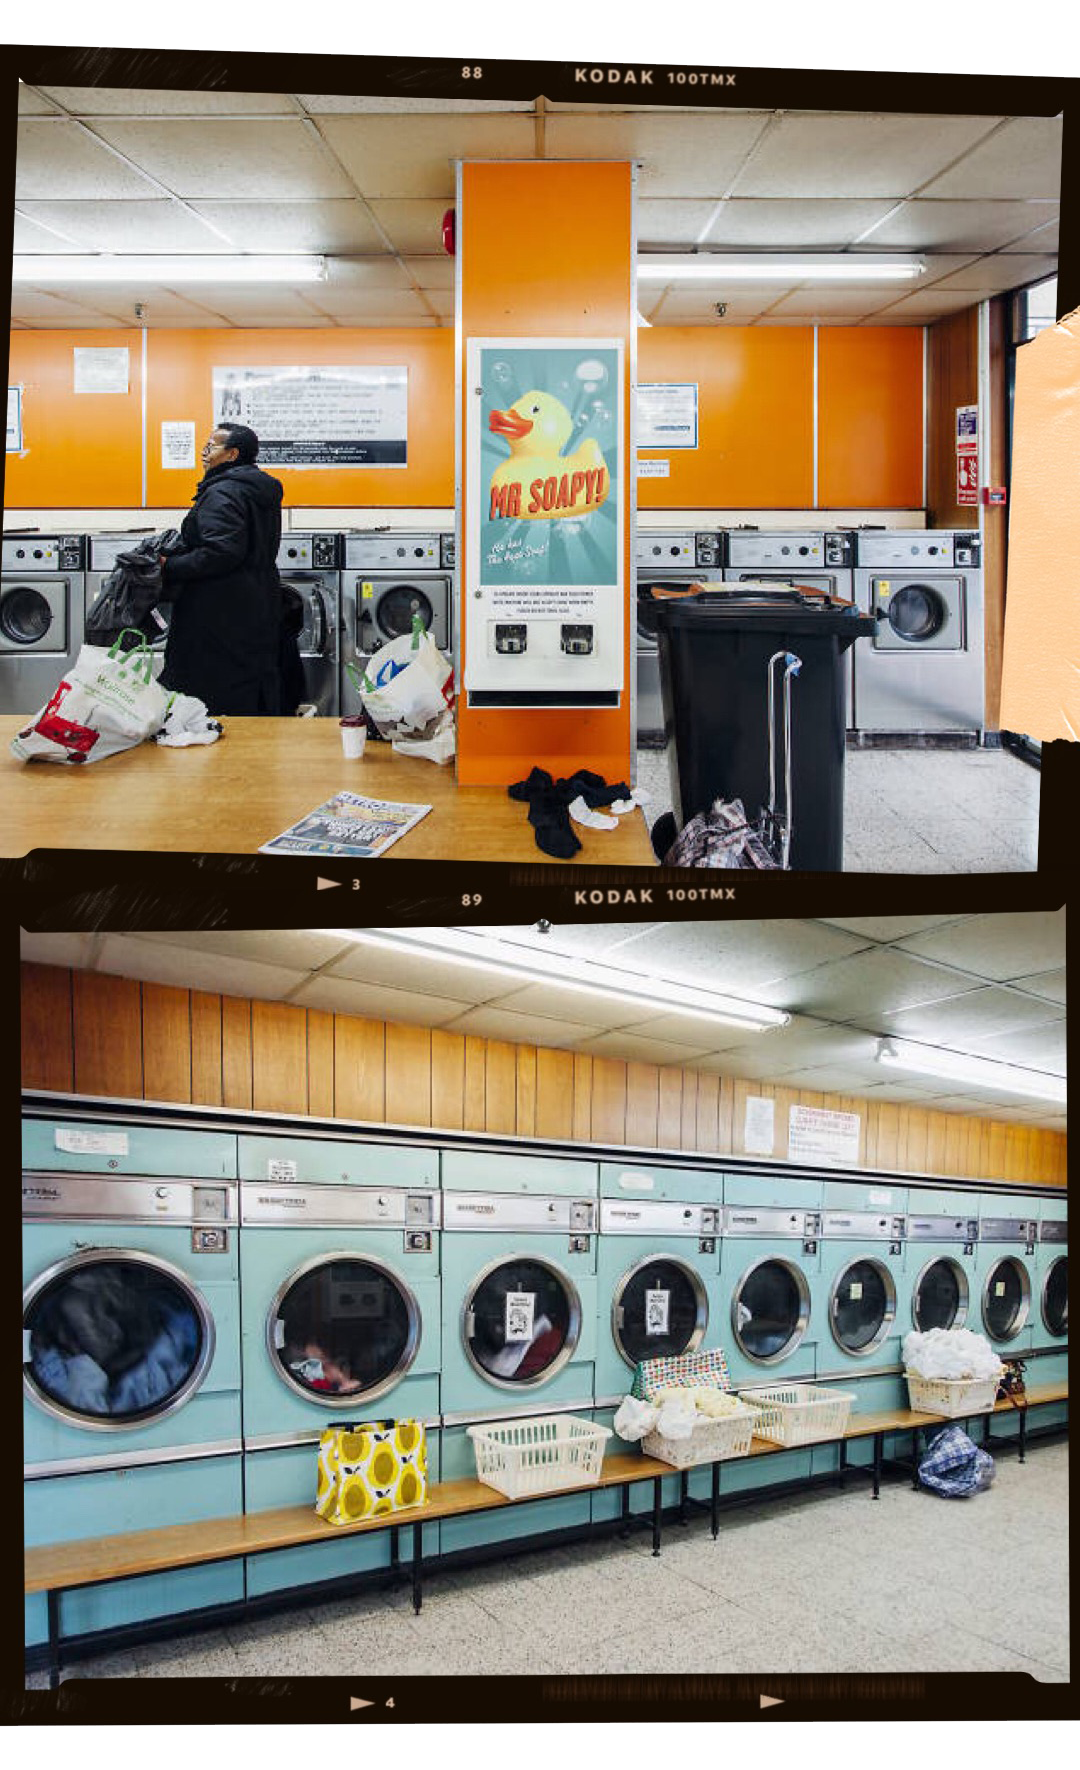 BARBICAN LAUNDERETTE - Launderettes are a quite famous spot for photos in London; however, it is said that the Barbican Launderette is the one to see. The launderette looks as if the time stopped, with wooden wall panels, teal washing machines and accents of vibrant oranges. Be sure to spot the funky Mr.Soapy detergent dispenser.Location:2 Fann Street, EC2Y 8BR